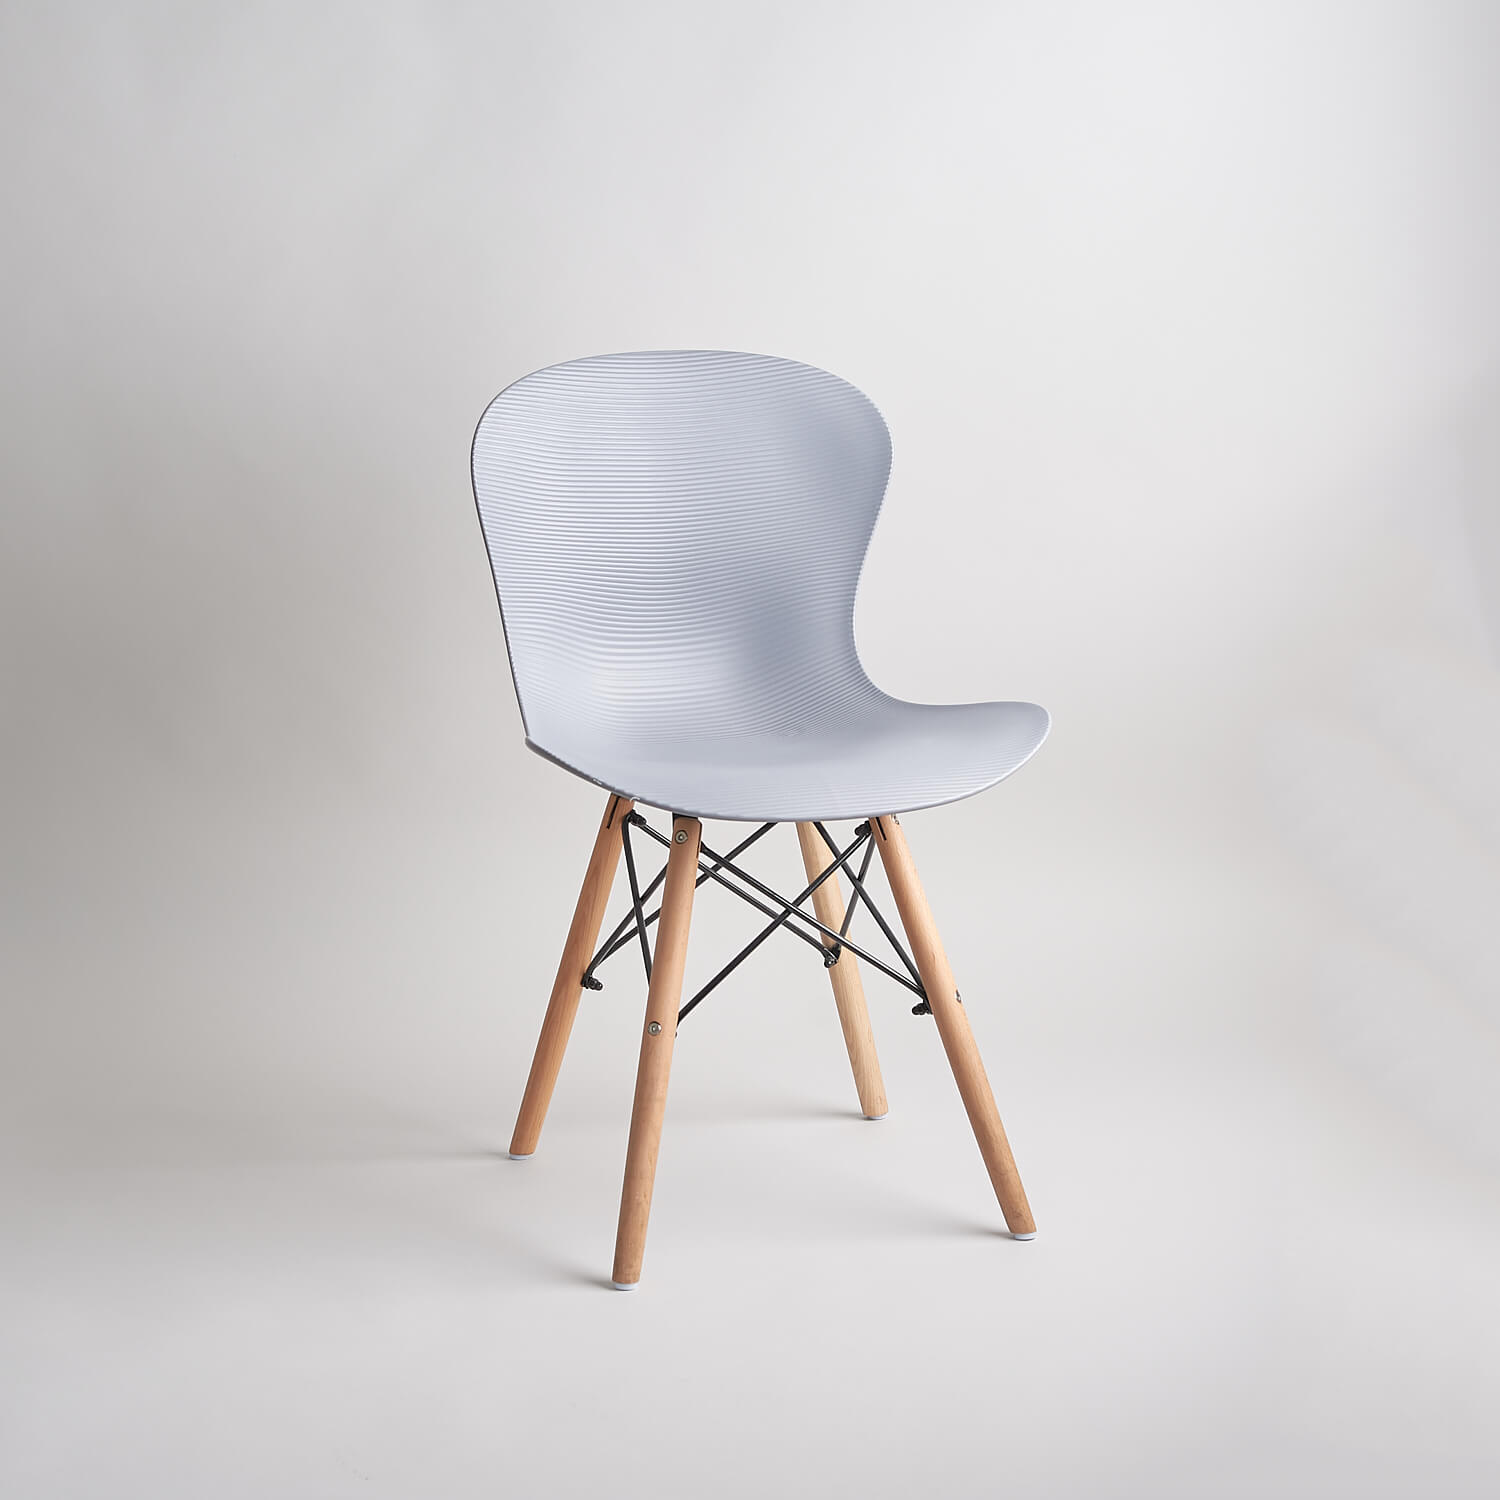 Charles Eames 'Eiffel' style chair part of the studio's stock of furniture